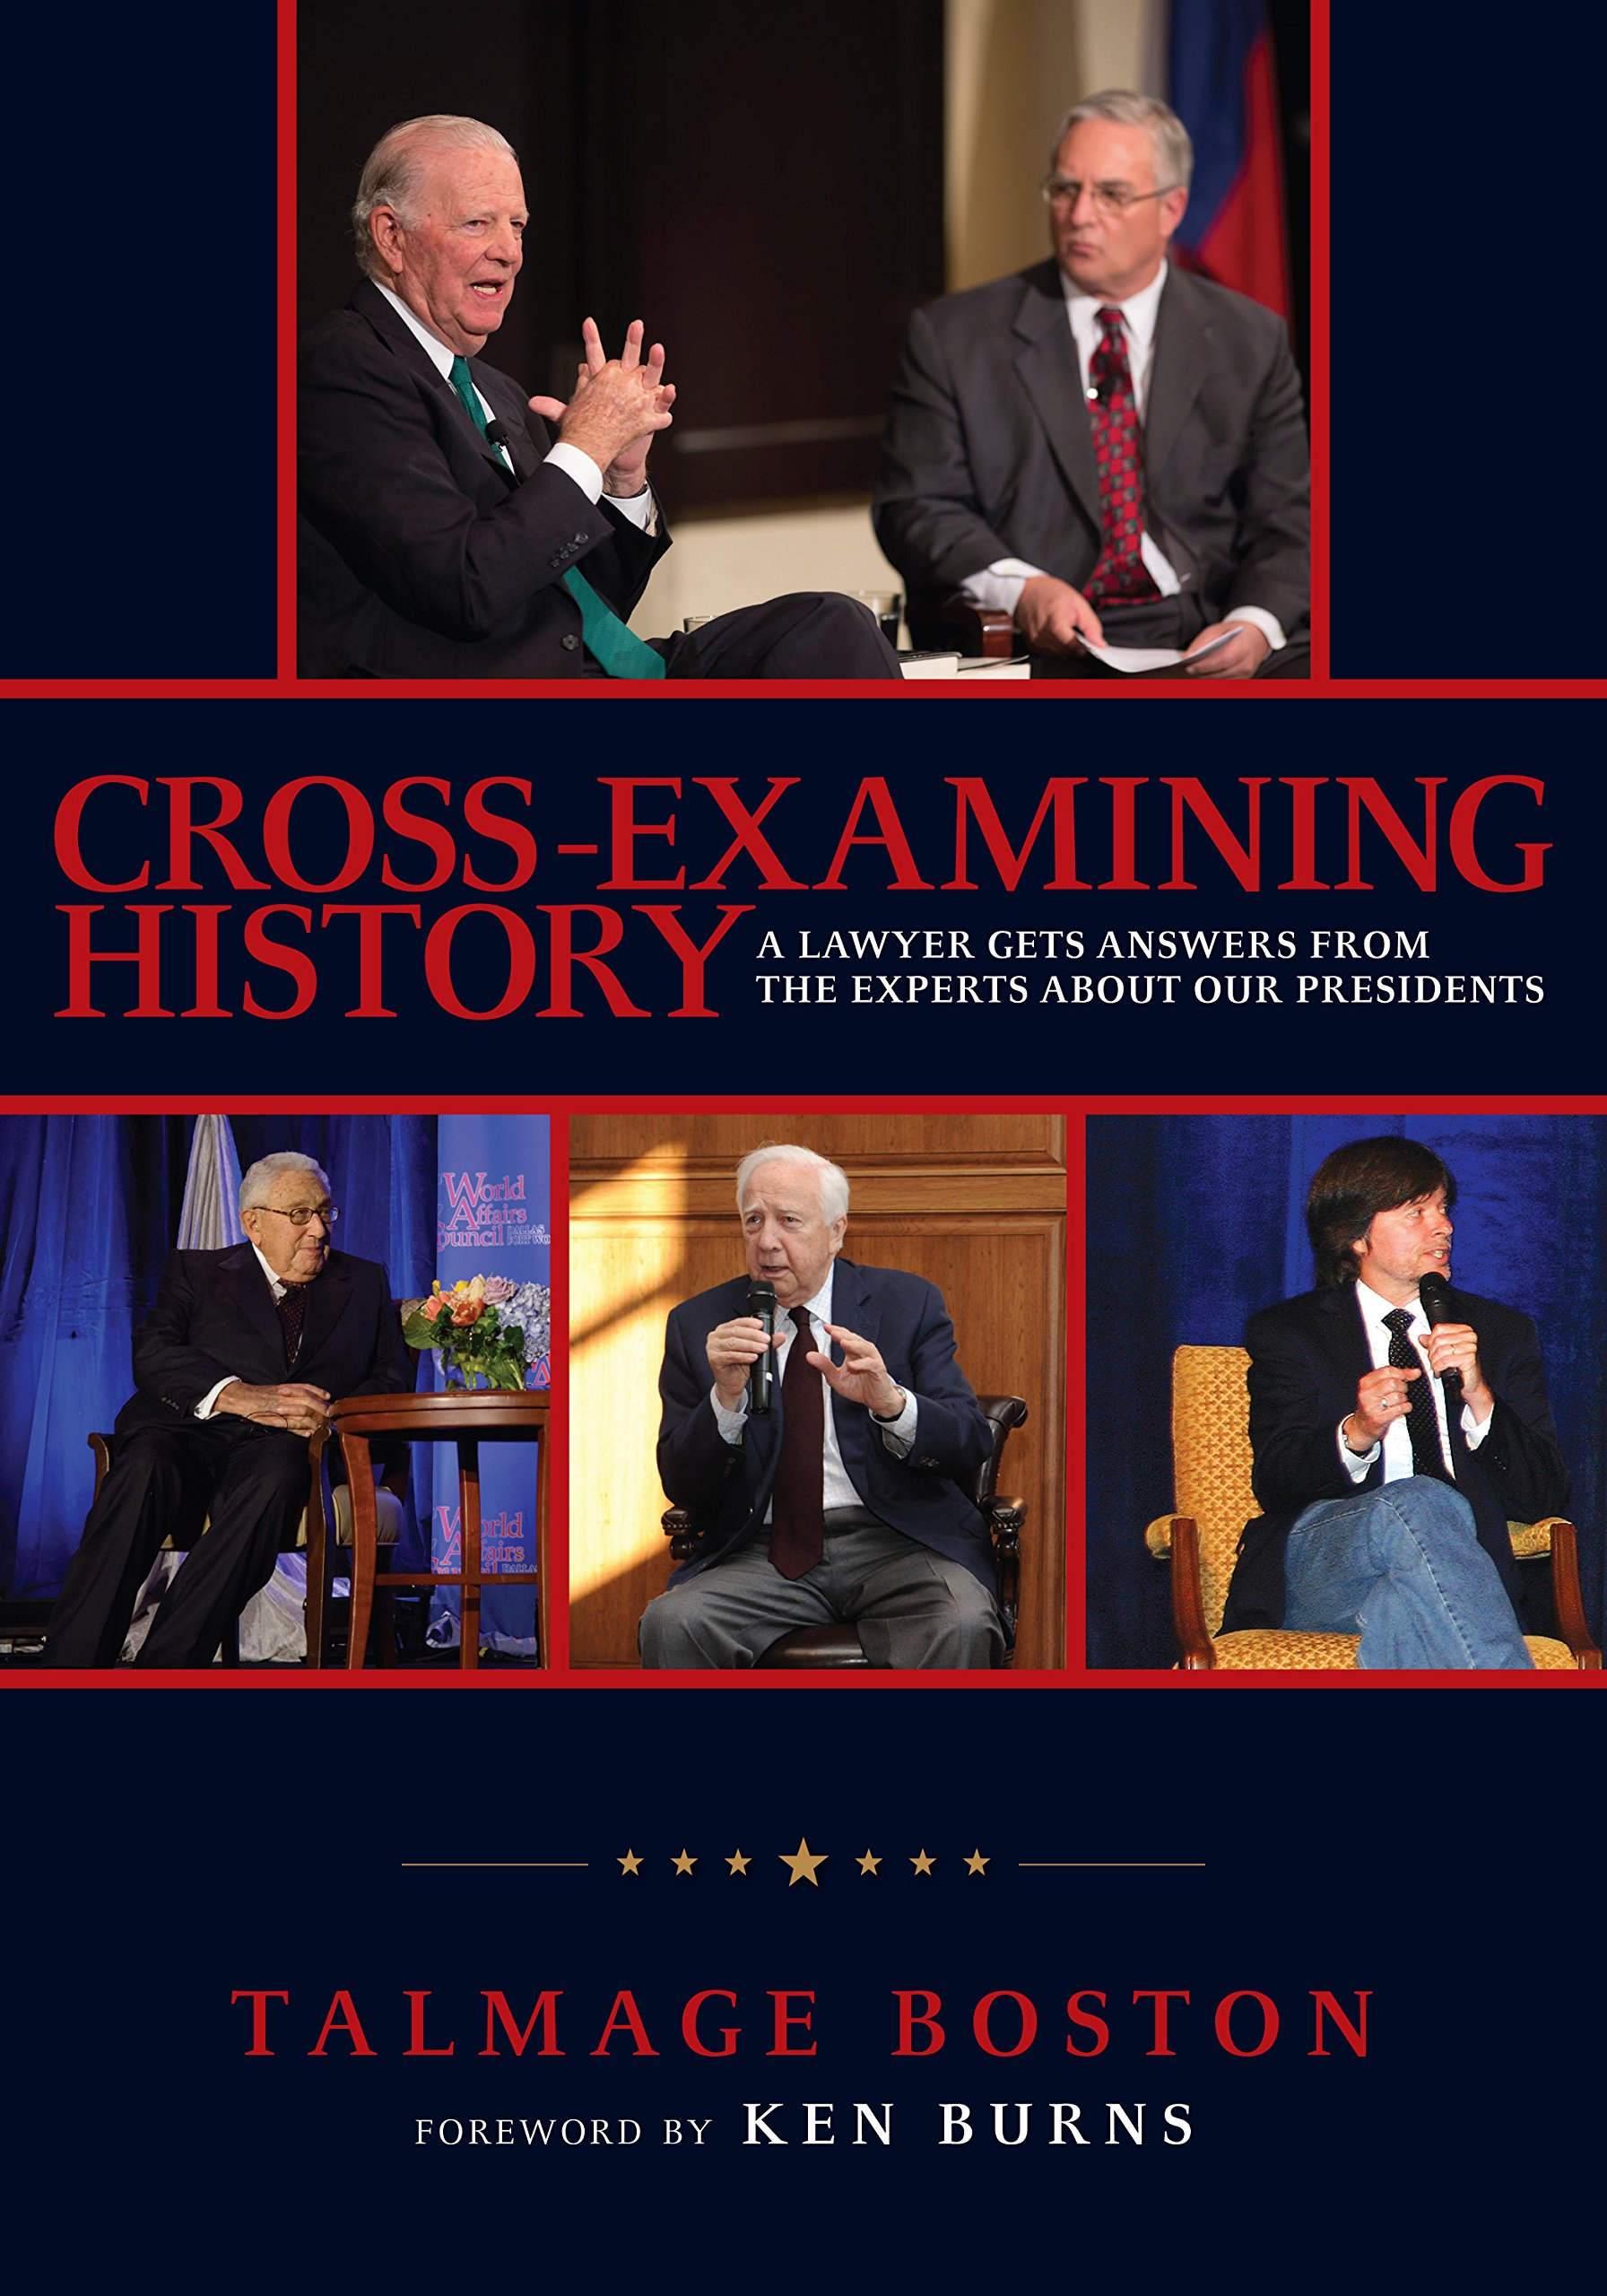 Image OfCross-Examining History: A Lawyer Gets Answers From The Experts About Our Presidents